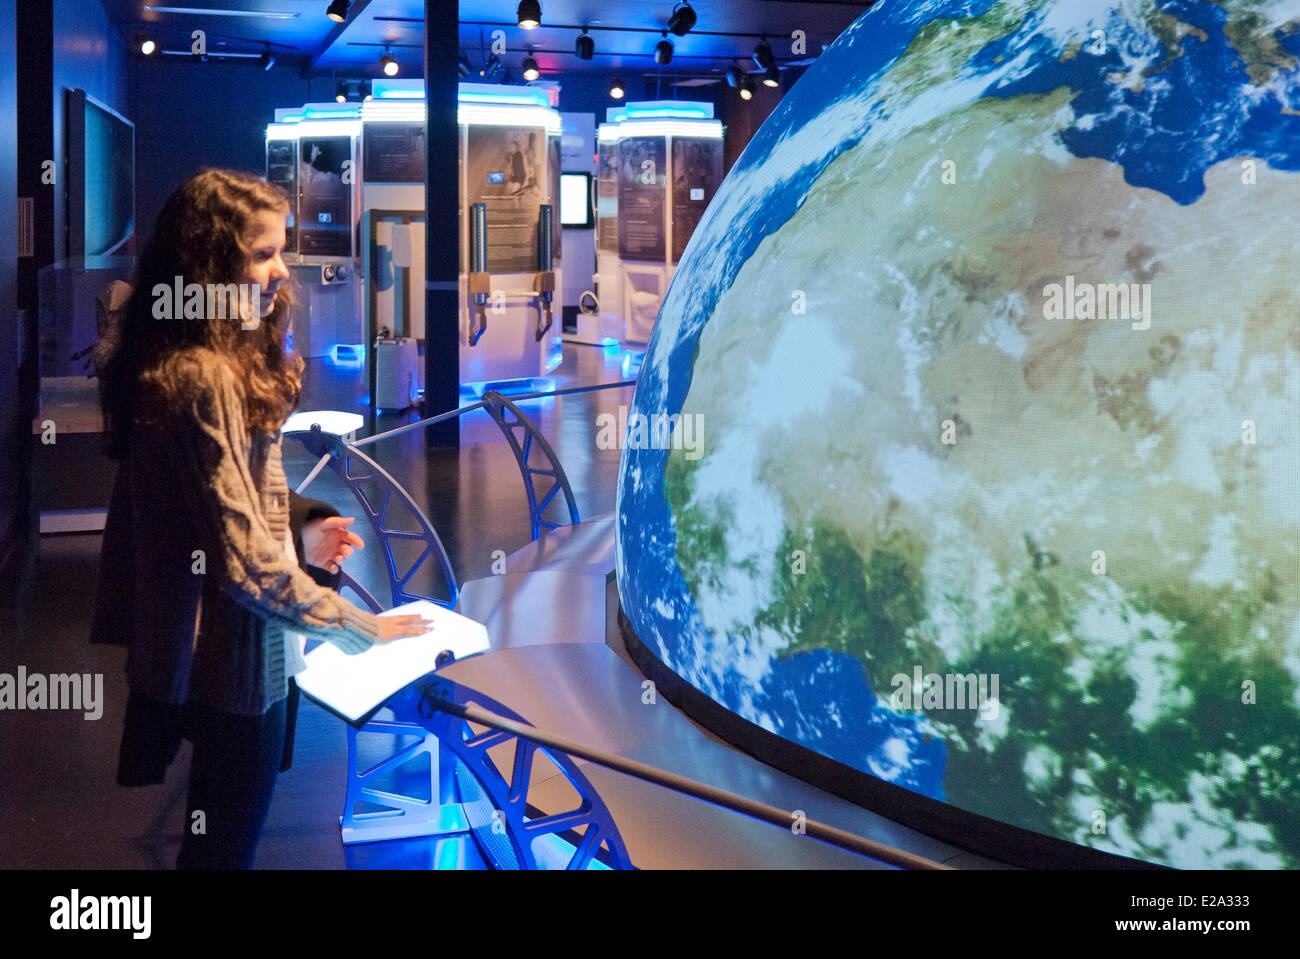 Canada, Ontario Province, Ottawa, Science and Technology Museum - Stock Image